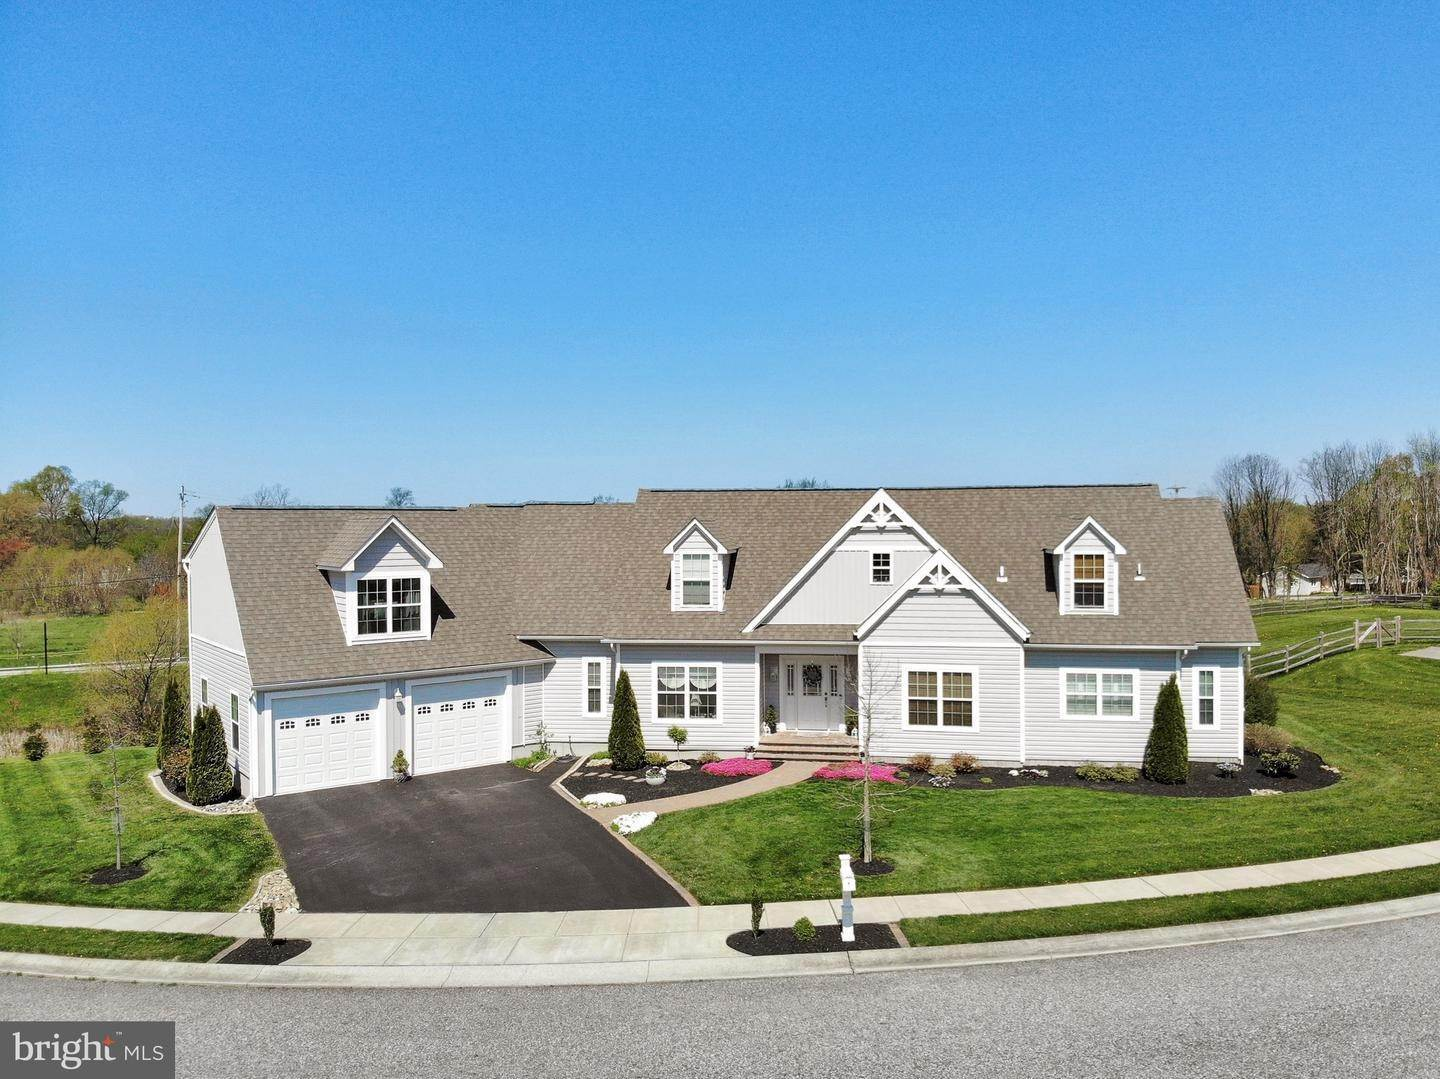 Residential for Sale at 111 CHET Drive Cochranville, Pennsylvania 19330 United States